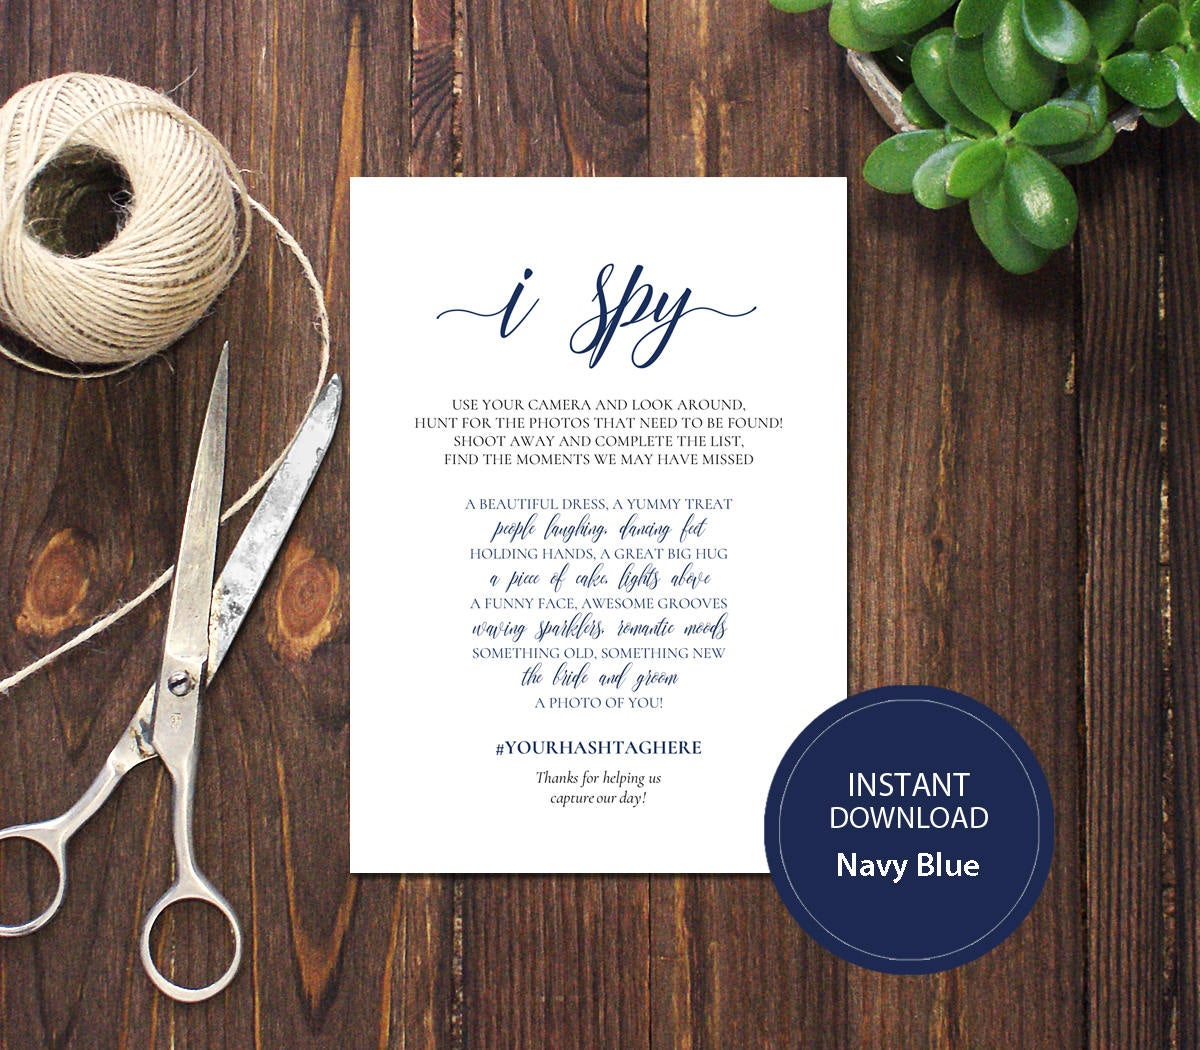 DIY  & Handmade Wedding Favour Ideas l DIY I Spy Wedding Game Template